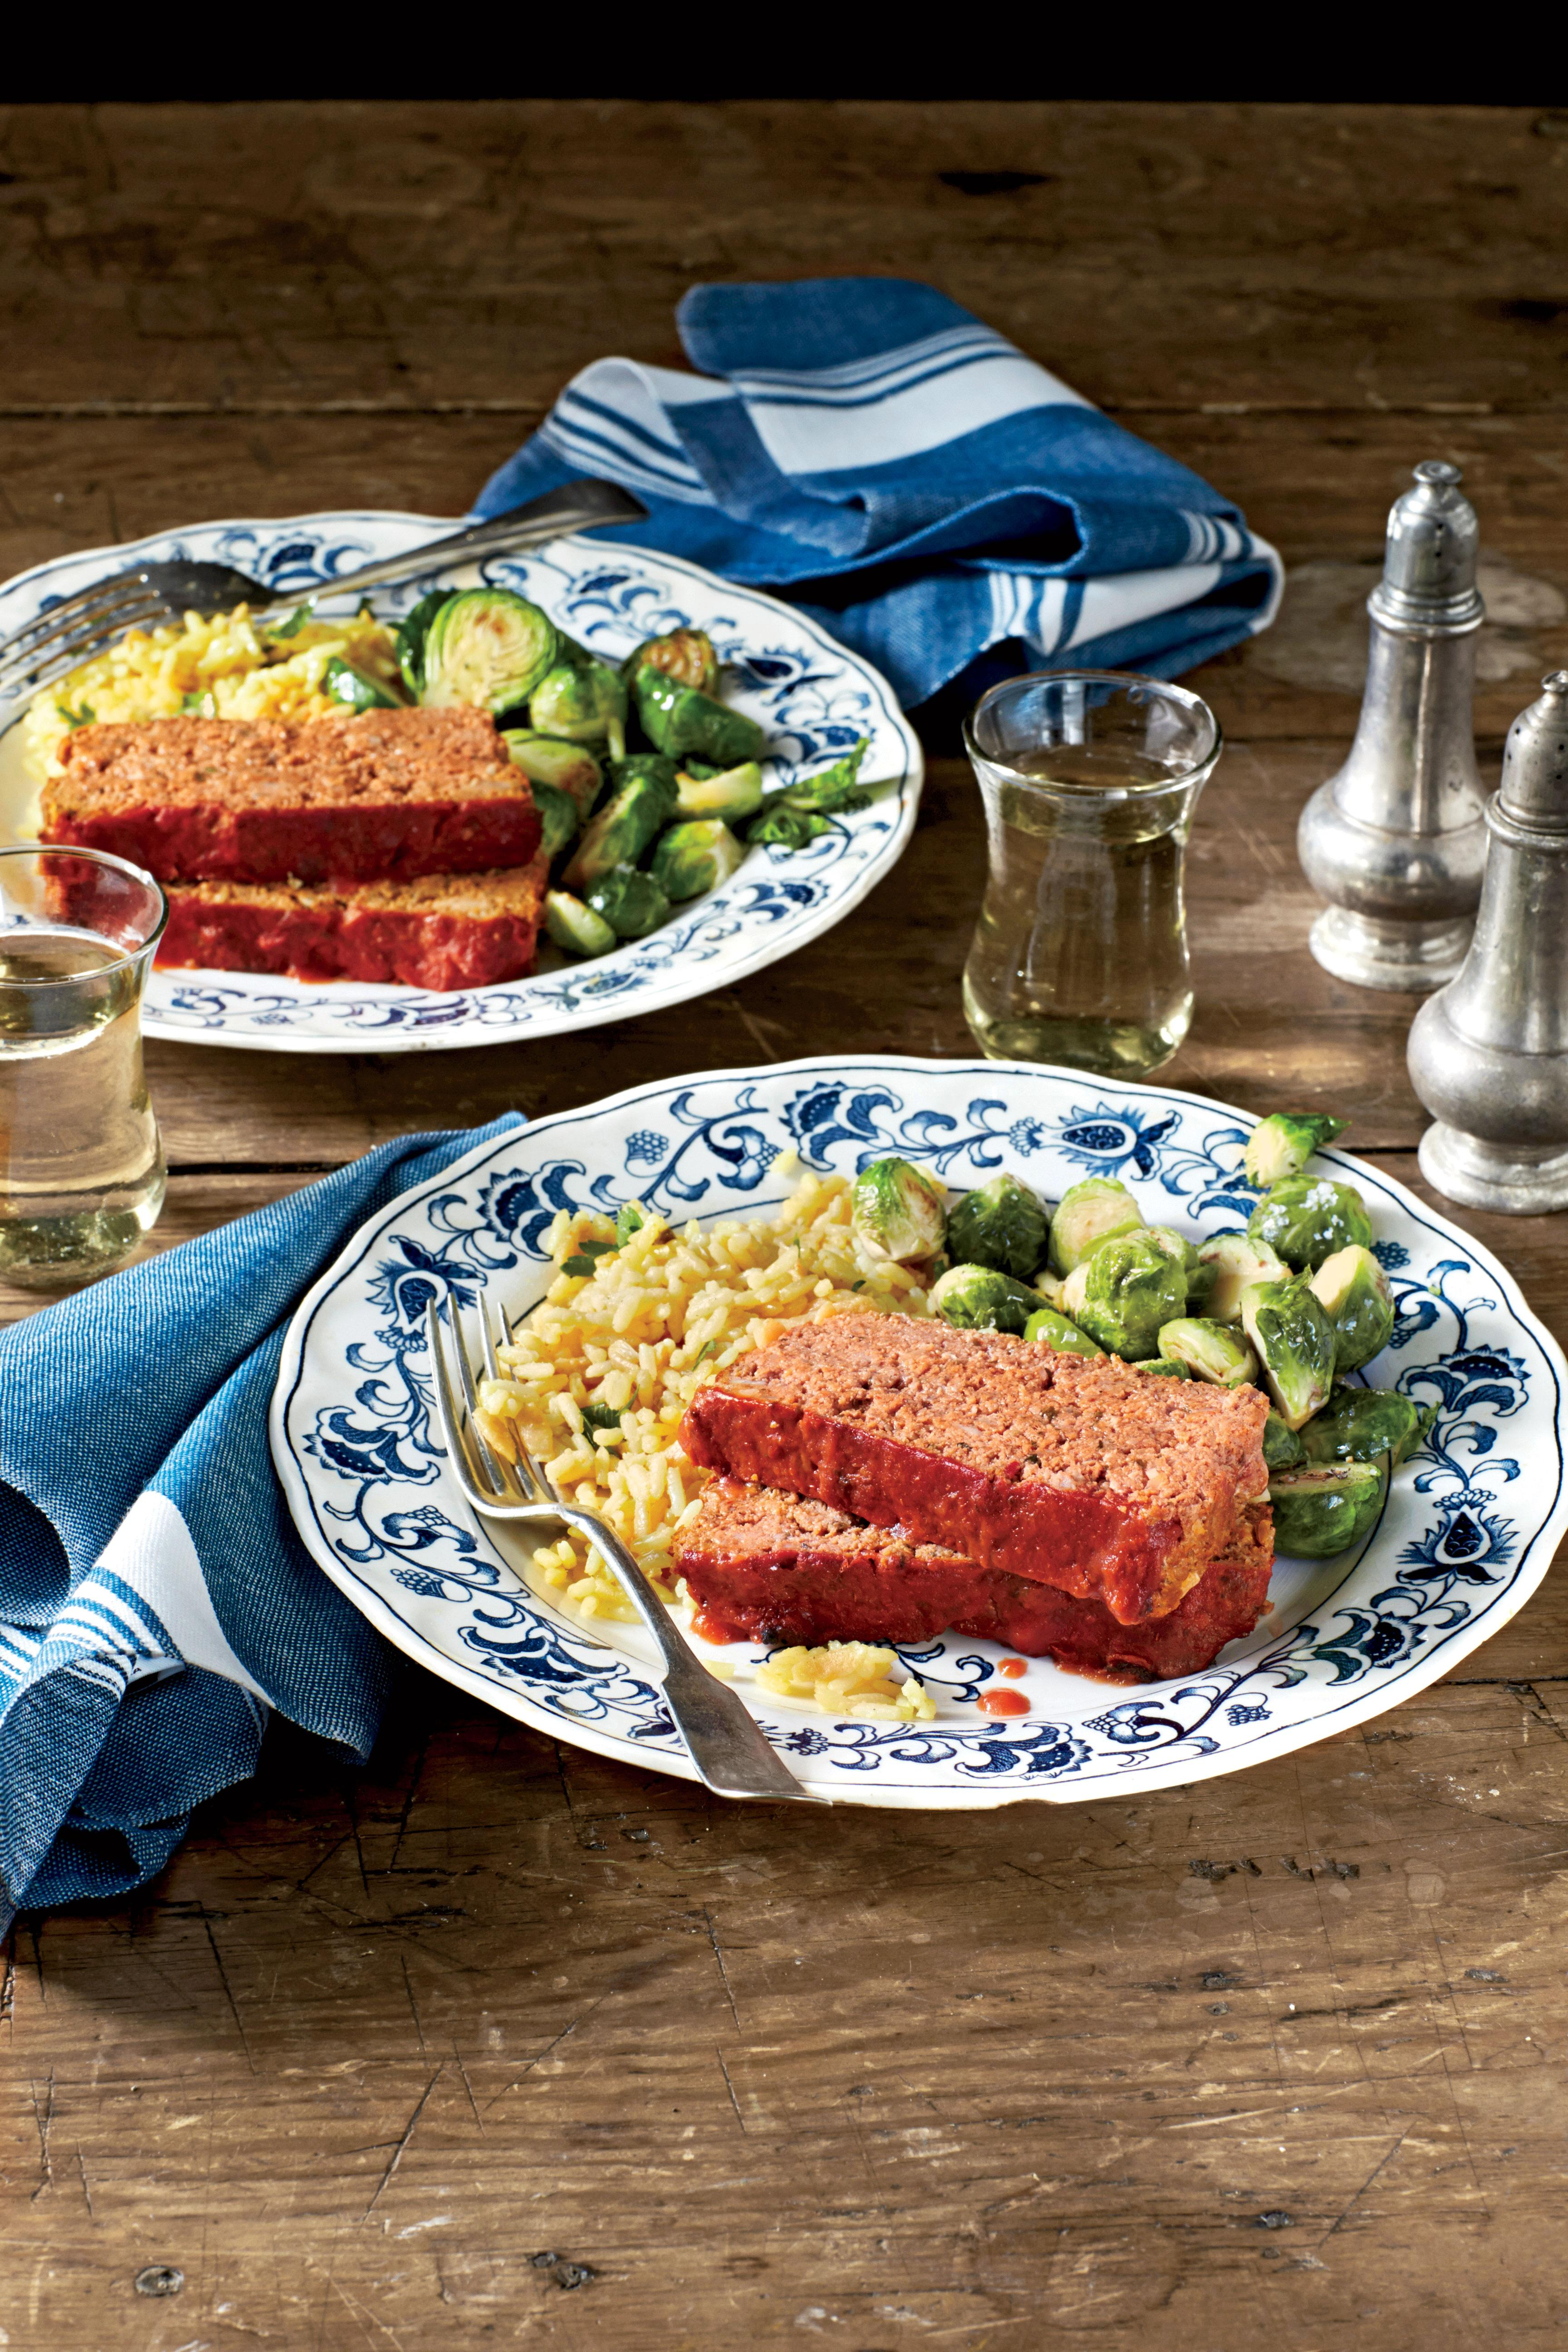 """<p><strong>Recipe: <a href=""""http://www.myrecipes.com/recipe/italian-turkey-meatloaves"""" rel=""""nofollow noopener"""" target=""""_blank"""" data-ylk=""""slk:Italian Turkey Meatloaves"""" class=""""link rapid-noclick-resp"""">Italian Turkey Meatloaves</a></strong></p><p>It's always great to double-down on a great-tasting meatloaf, and this recipe is sized so you can plan ahead for leftovers. This meal is for the person in your home we call the Sunday Strategist: They bake two meatloaves on Sunday, then serve one, and use the other for two weeknight meals. Turkey is a great lean meat for meatloaves, and it flavors and seasons well. One of the great tastes in this recipe is basil pesto, which brings its rich, full flavors to the fore. You'll also love the salty bite of Parmesan cheese, and the tender taste of baked, sliced mushrooms. The best part is that you can enjoy this meal again later in the week-and leftovers make any meal delicious.</p>"""